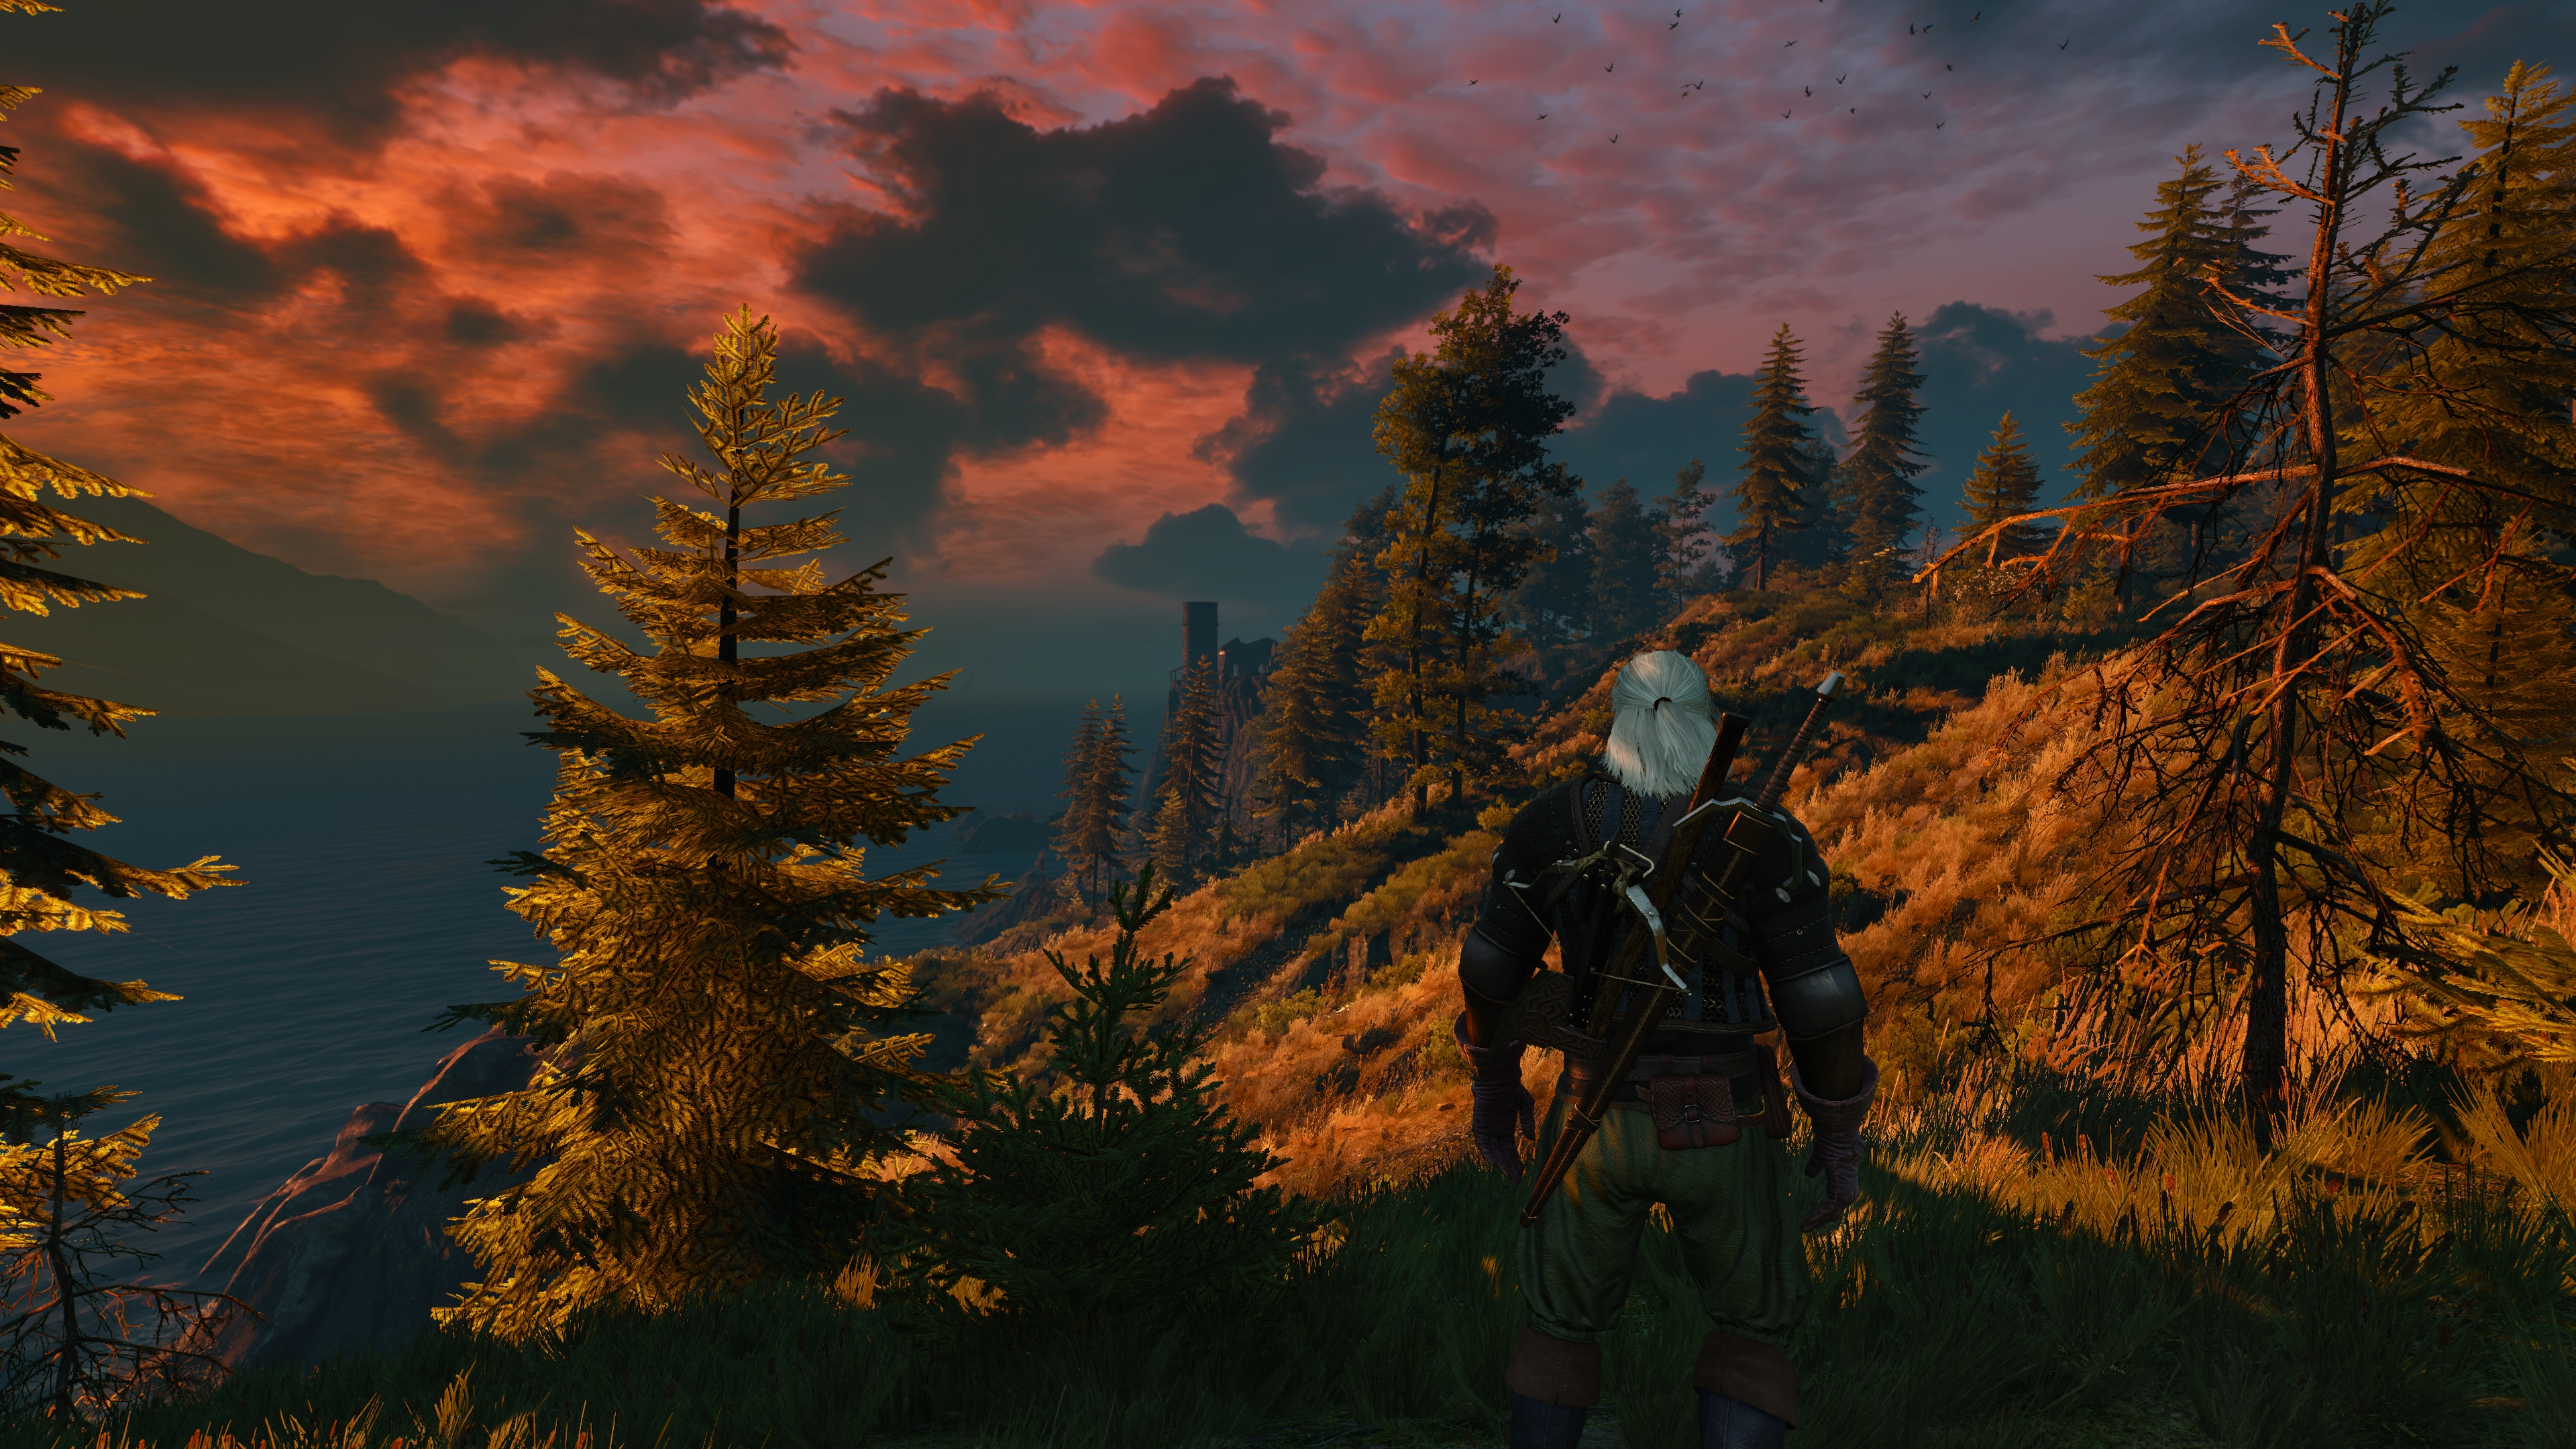 The Witcher 3 Super-Resolution 2017.12.18 - 23.53.25.08.jpg - Witcher 3: Wild Hunt, the